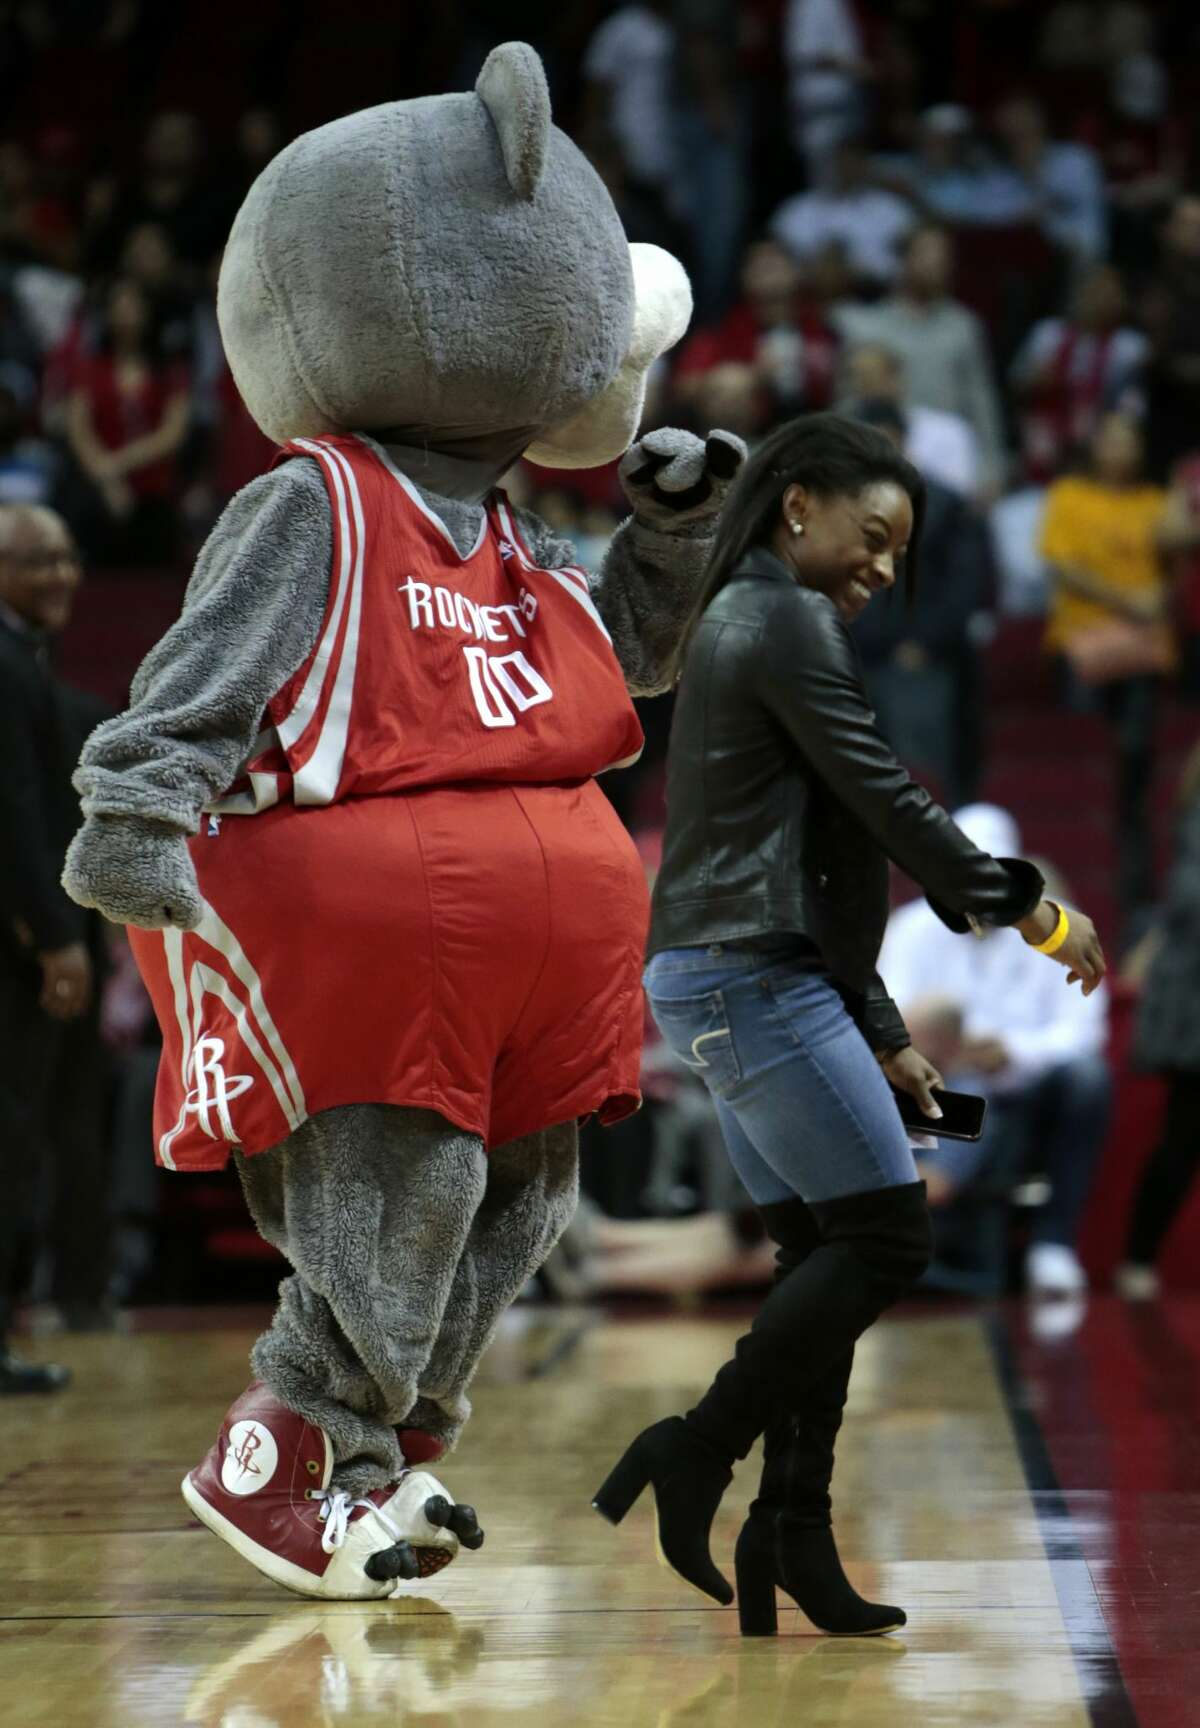 Olympic gold medalist Simone Biles, right, dances with Houston Rockets mascot Clutch during a time out in the fourth quarter of an NBA basketball game between the Rockets and the Utah Jazz at Toyota Center on Wednesday, March 8, 2017, in Houston. ( Brett Coomer / Houston Chronicle )